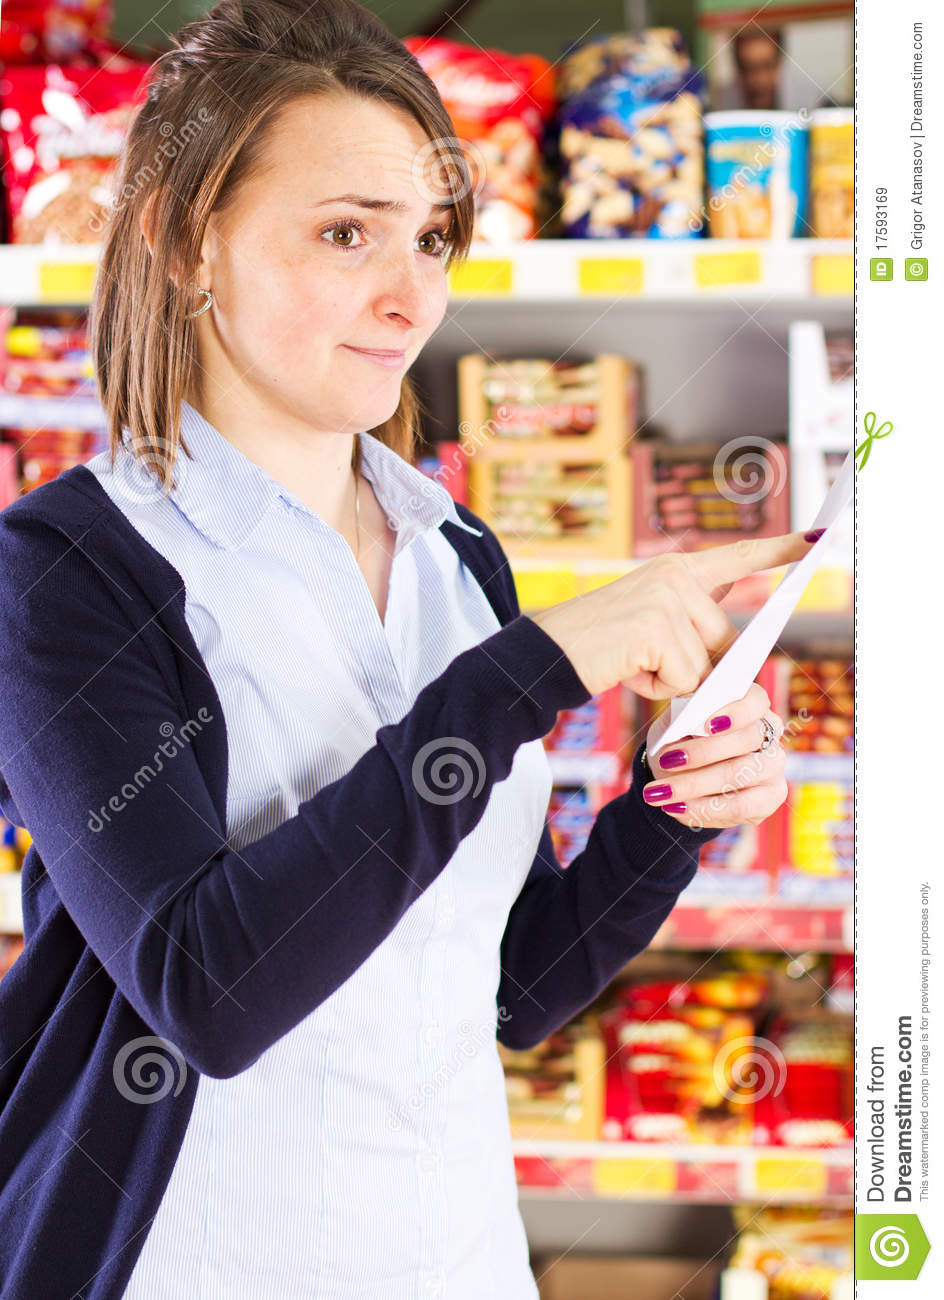 Customer pointing at shopping list